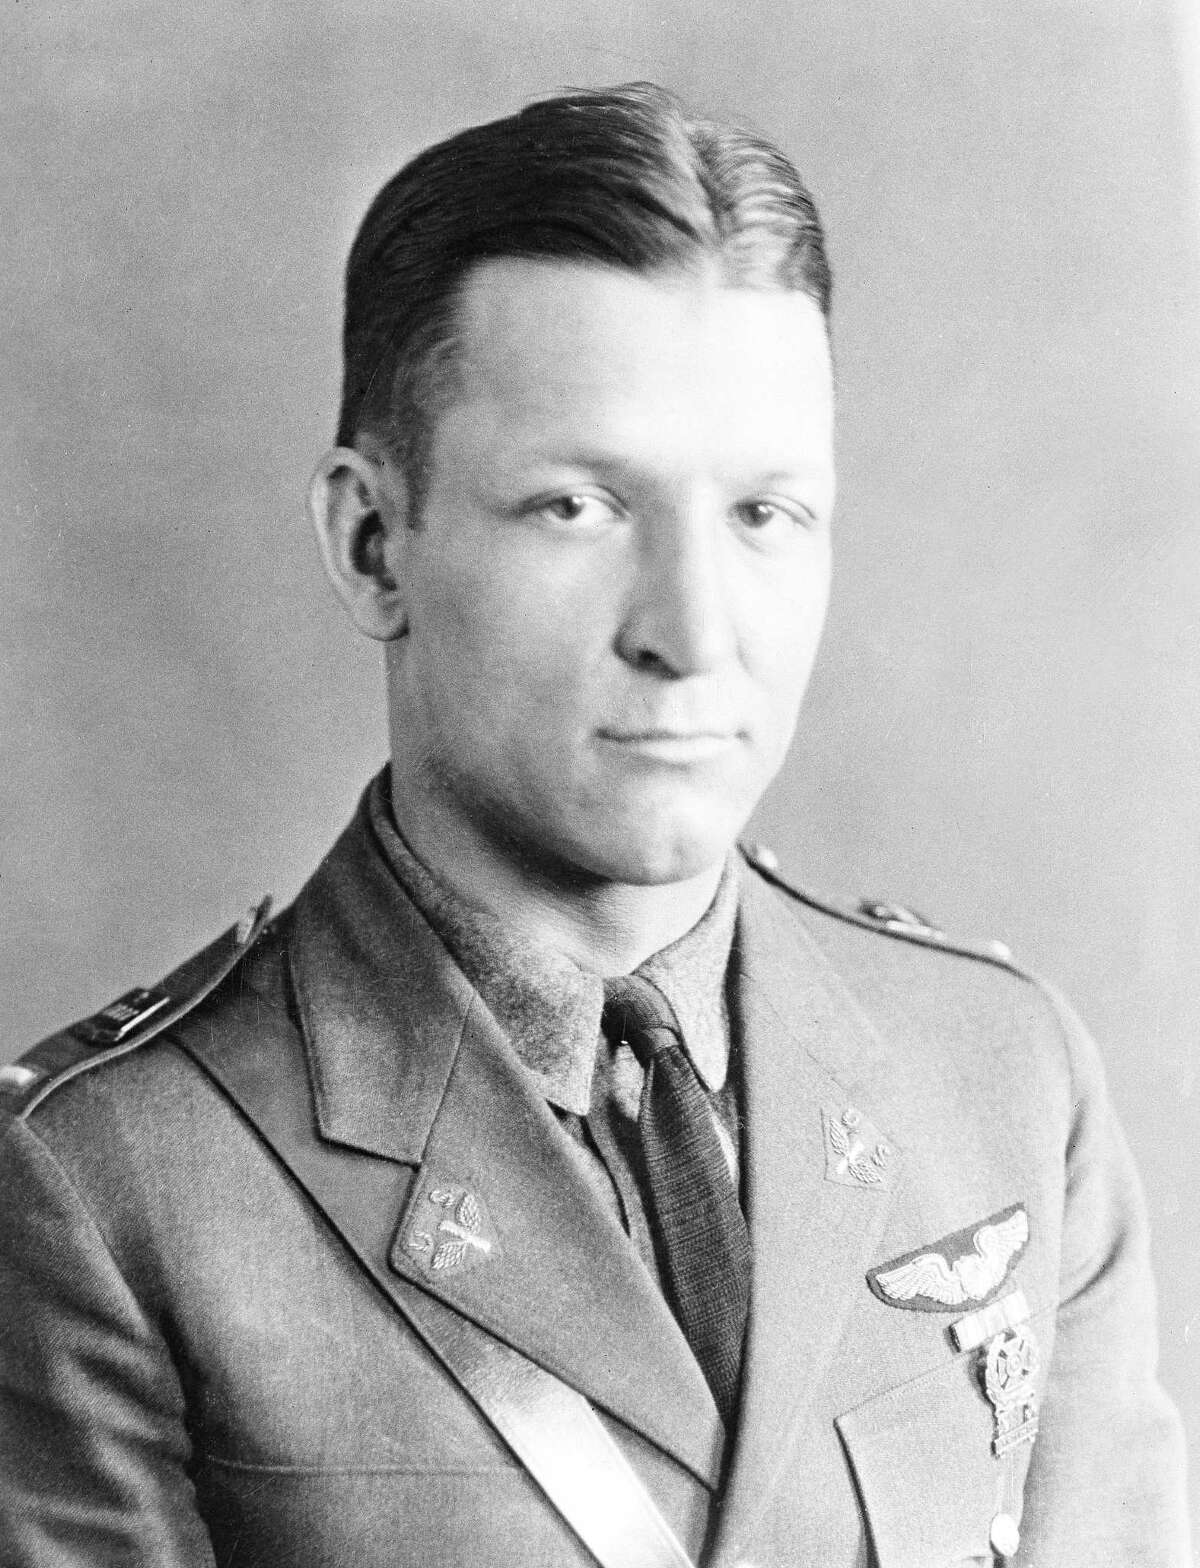 In this handout from the U.S. Air Force, Brig. Gen. Kenneth N. Walker of Glendale, Calif., is shown in this undated photo. Nearly 75 years after his father disappeared during a bombing mission over a remote Pacific island, Douglas Walker, the son of the highest-ranking recipient of the Medal of Honor still listed as missing from World War II, is pushing for renewed interest in finding the crash site and the remains of the crew. (AP Photo/USAF) ORG XMIT: NYR104